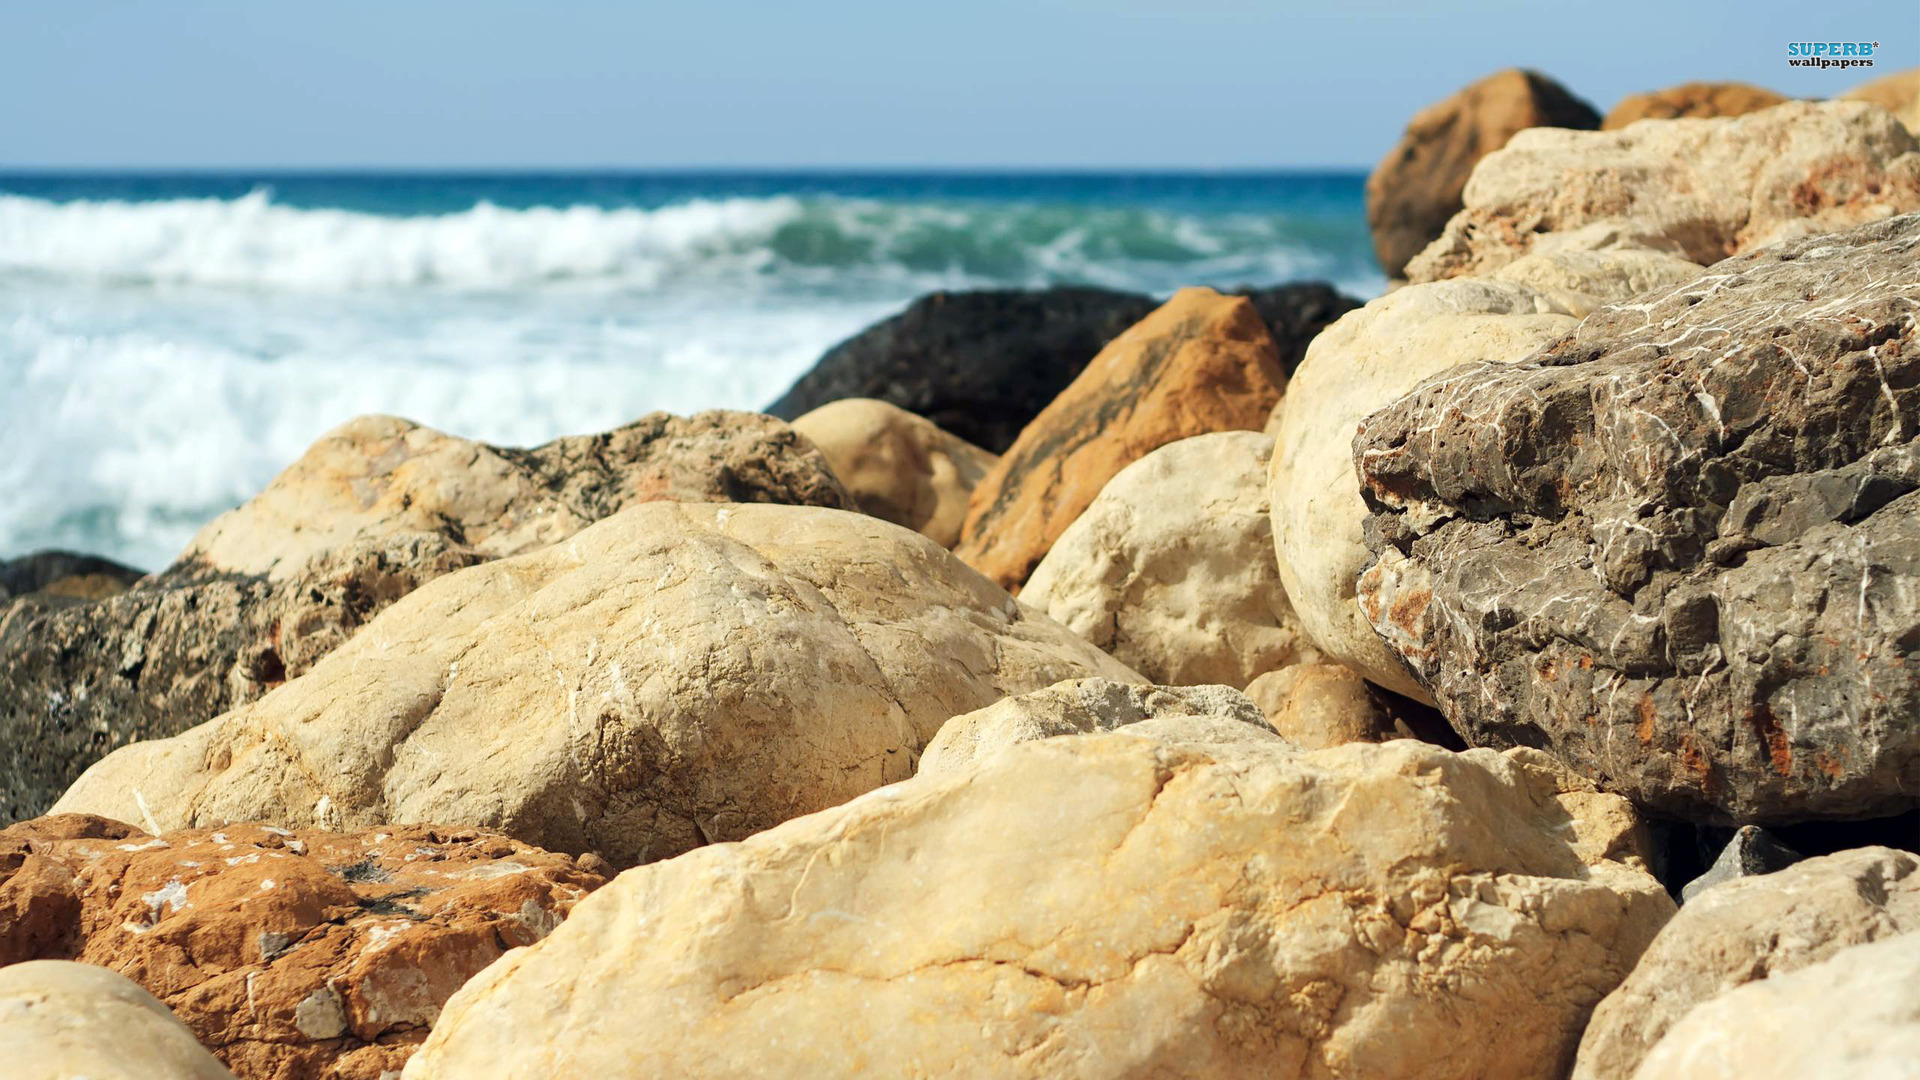 33 Beach Stones Wallpapers On Wallpapersafari